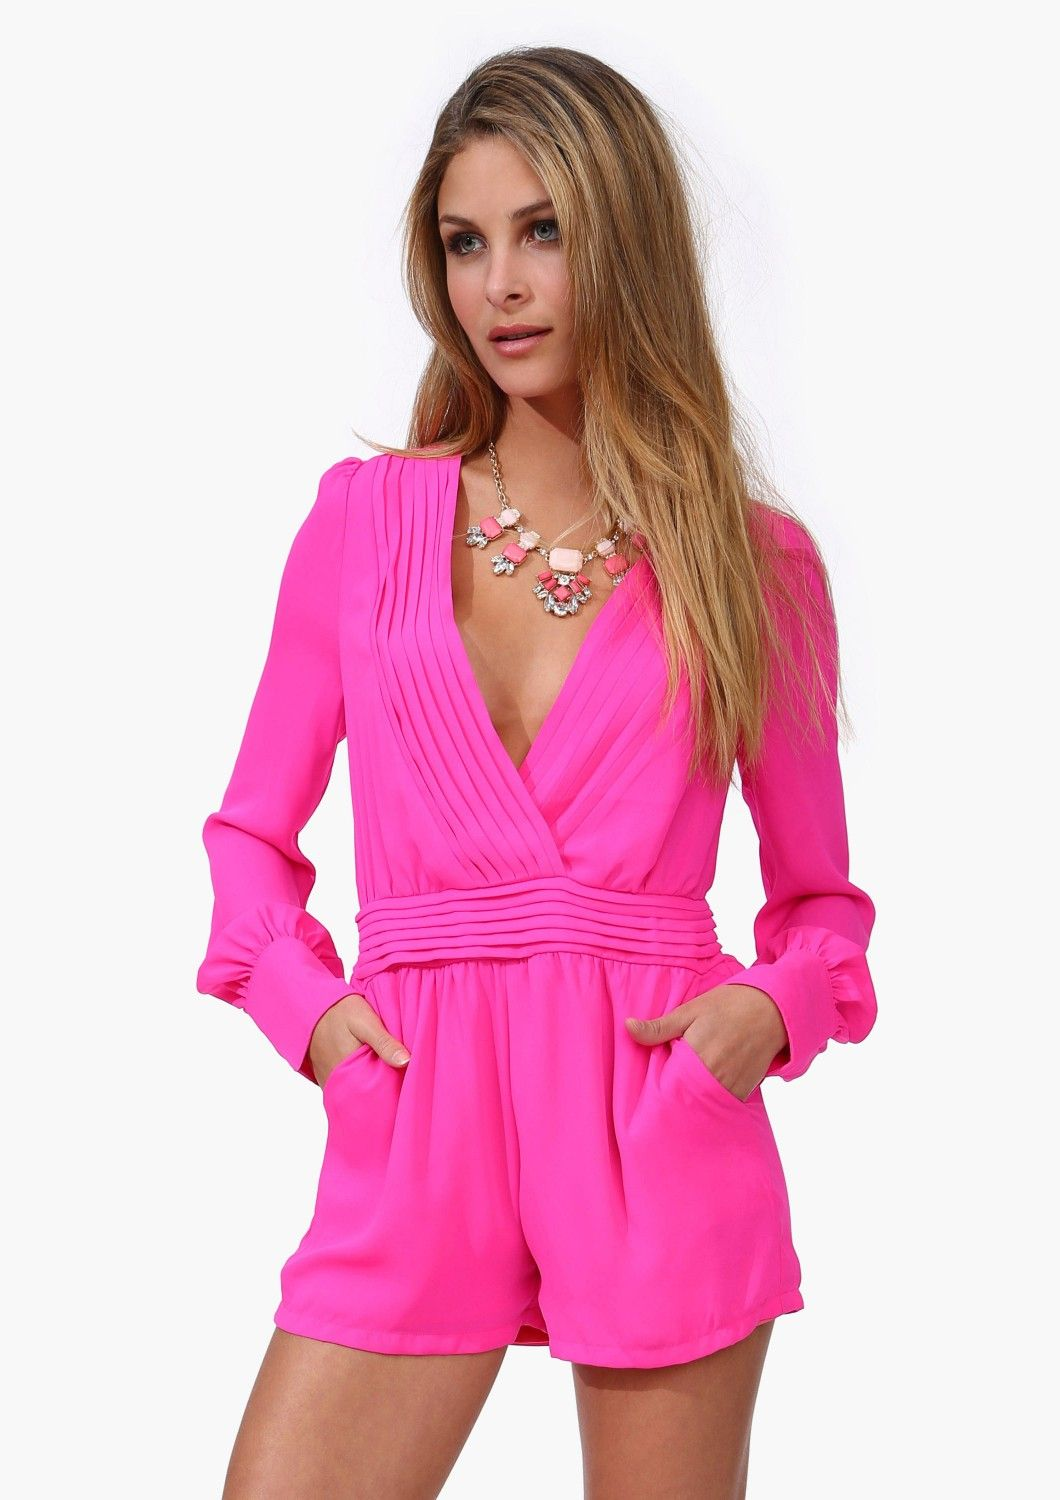 b8648a3dc30f Sultry hot pink romper. im not a fan of rompers